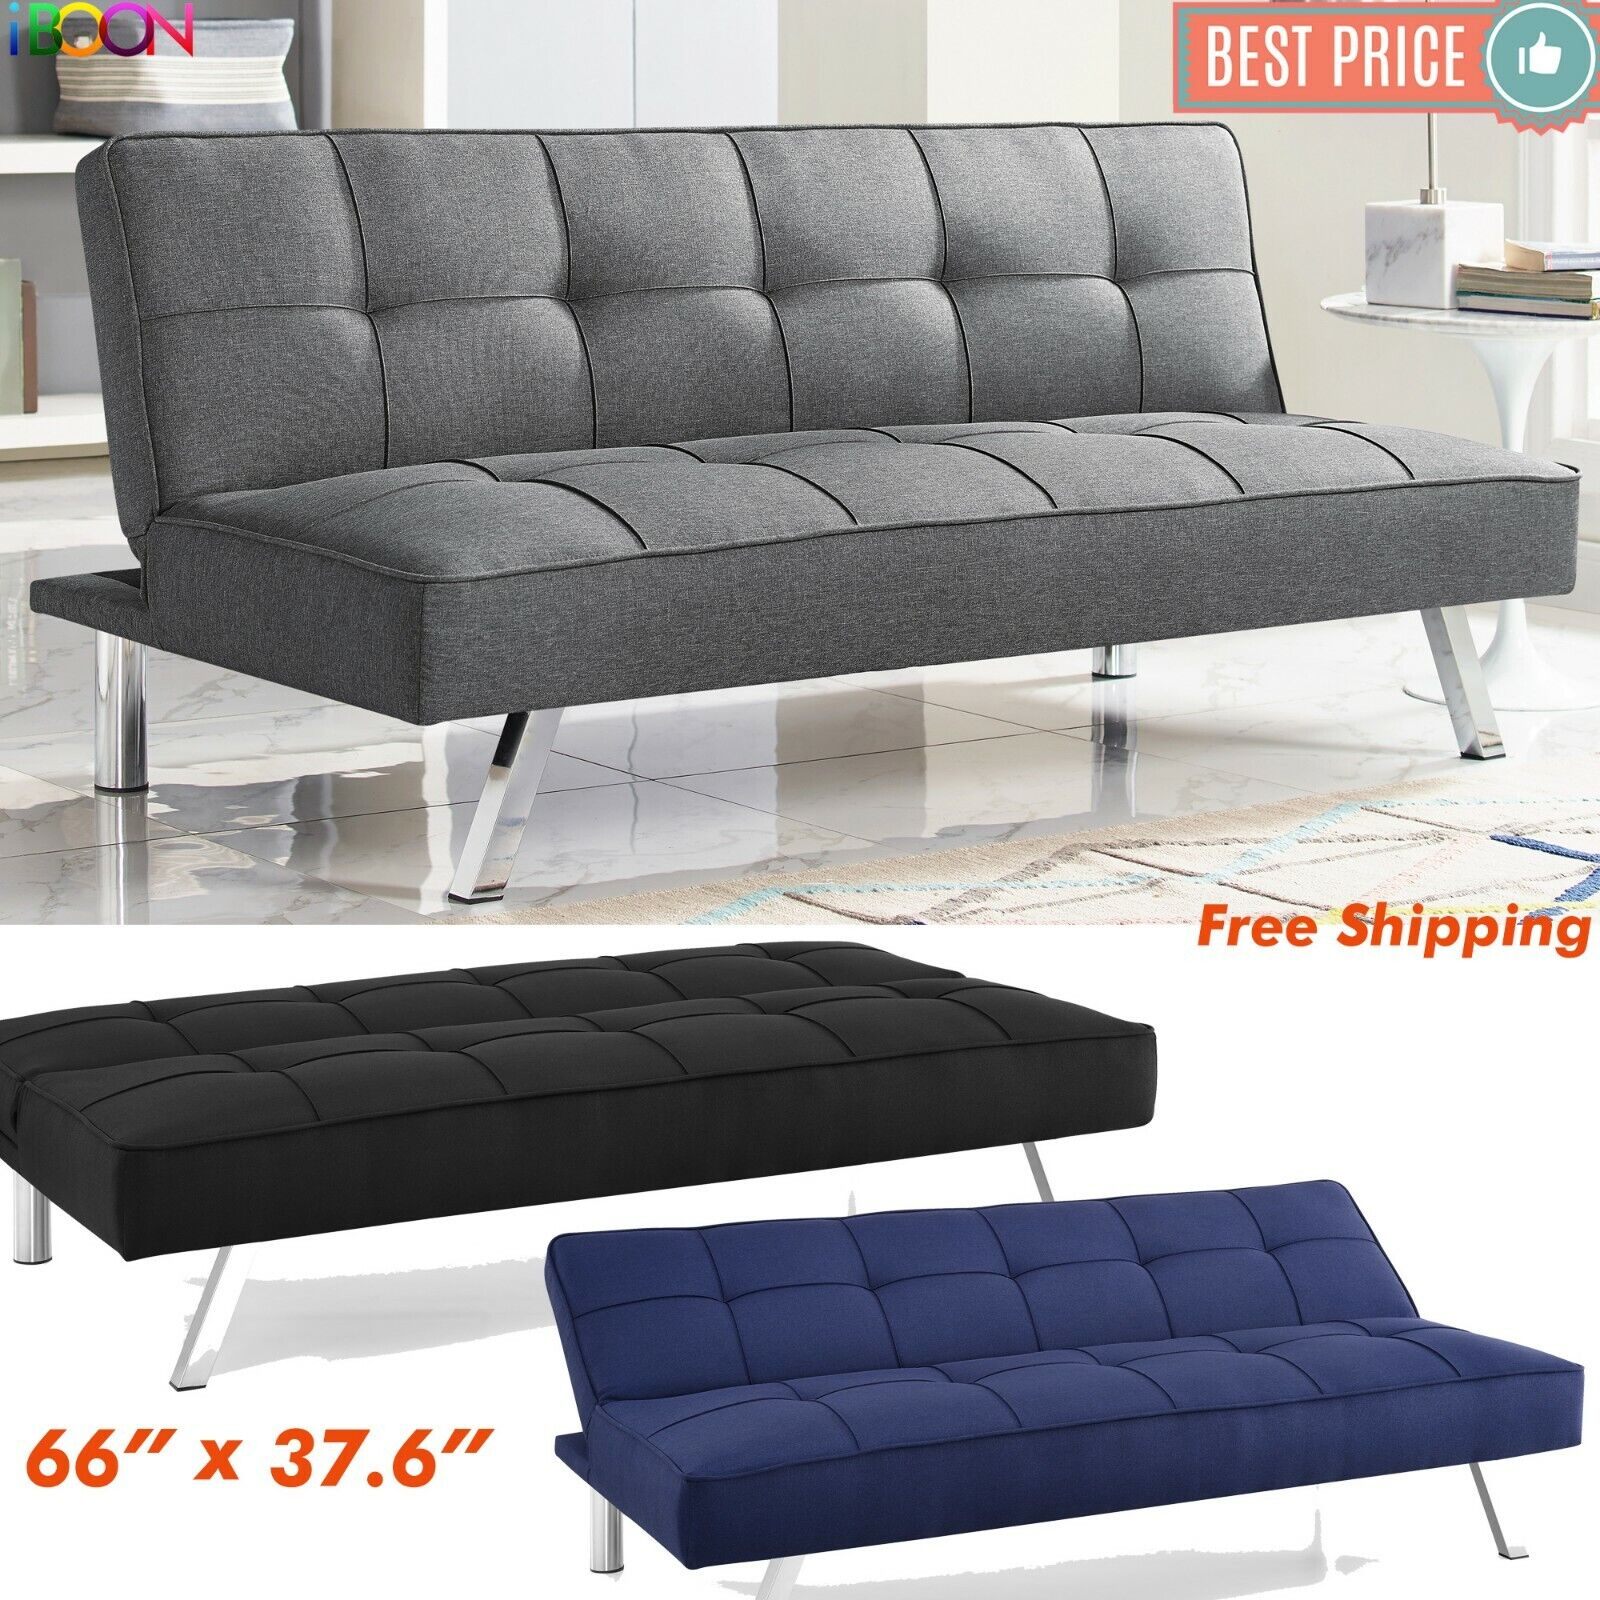 Futon Mattress Black Rollable Bed